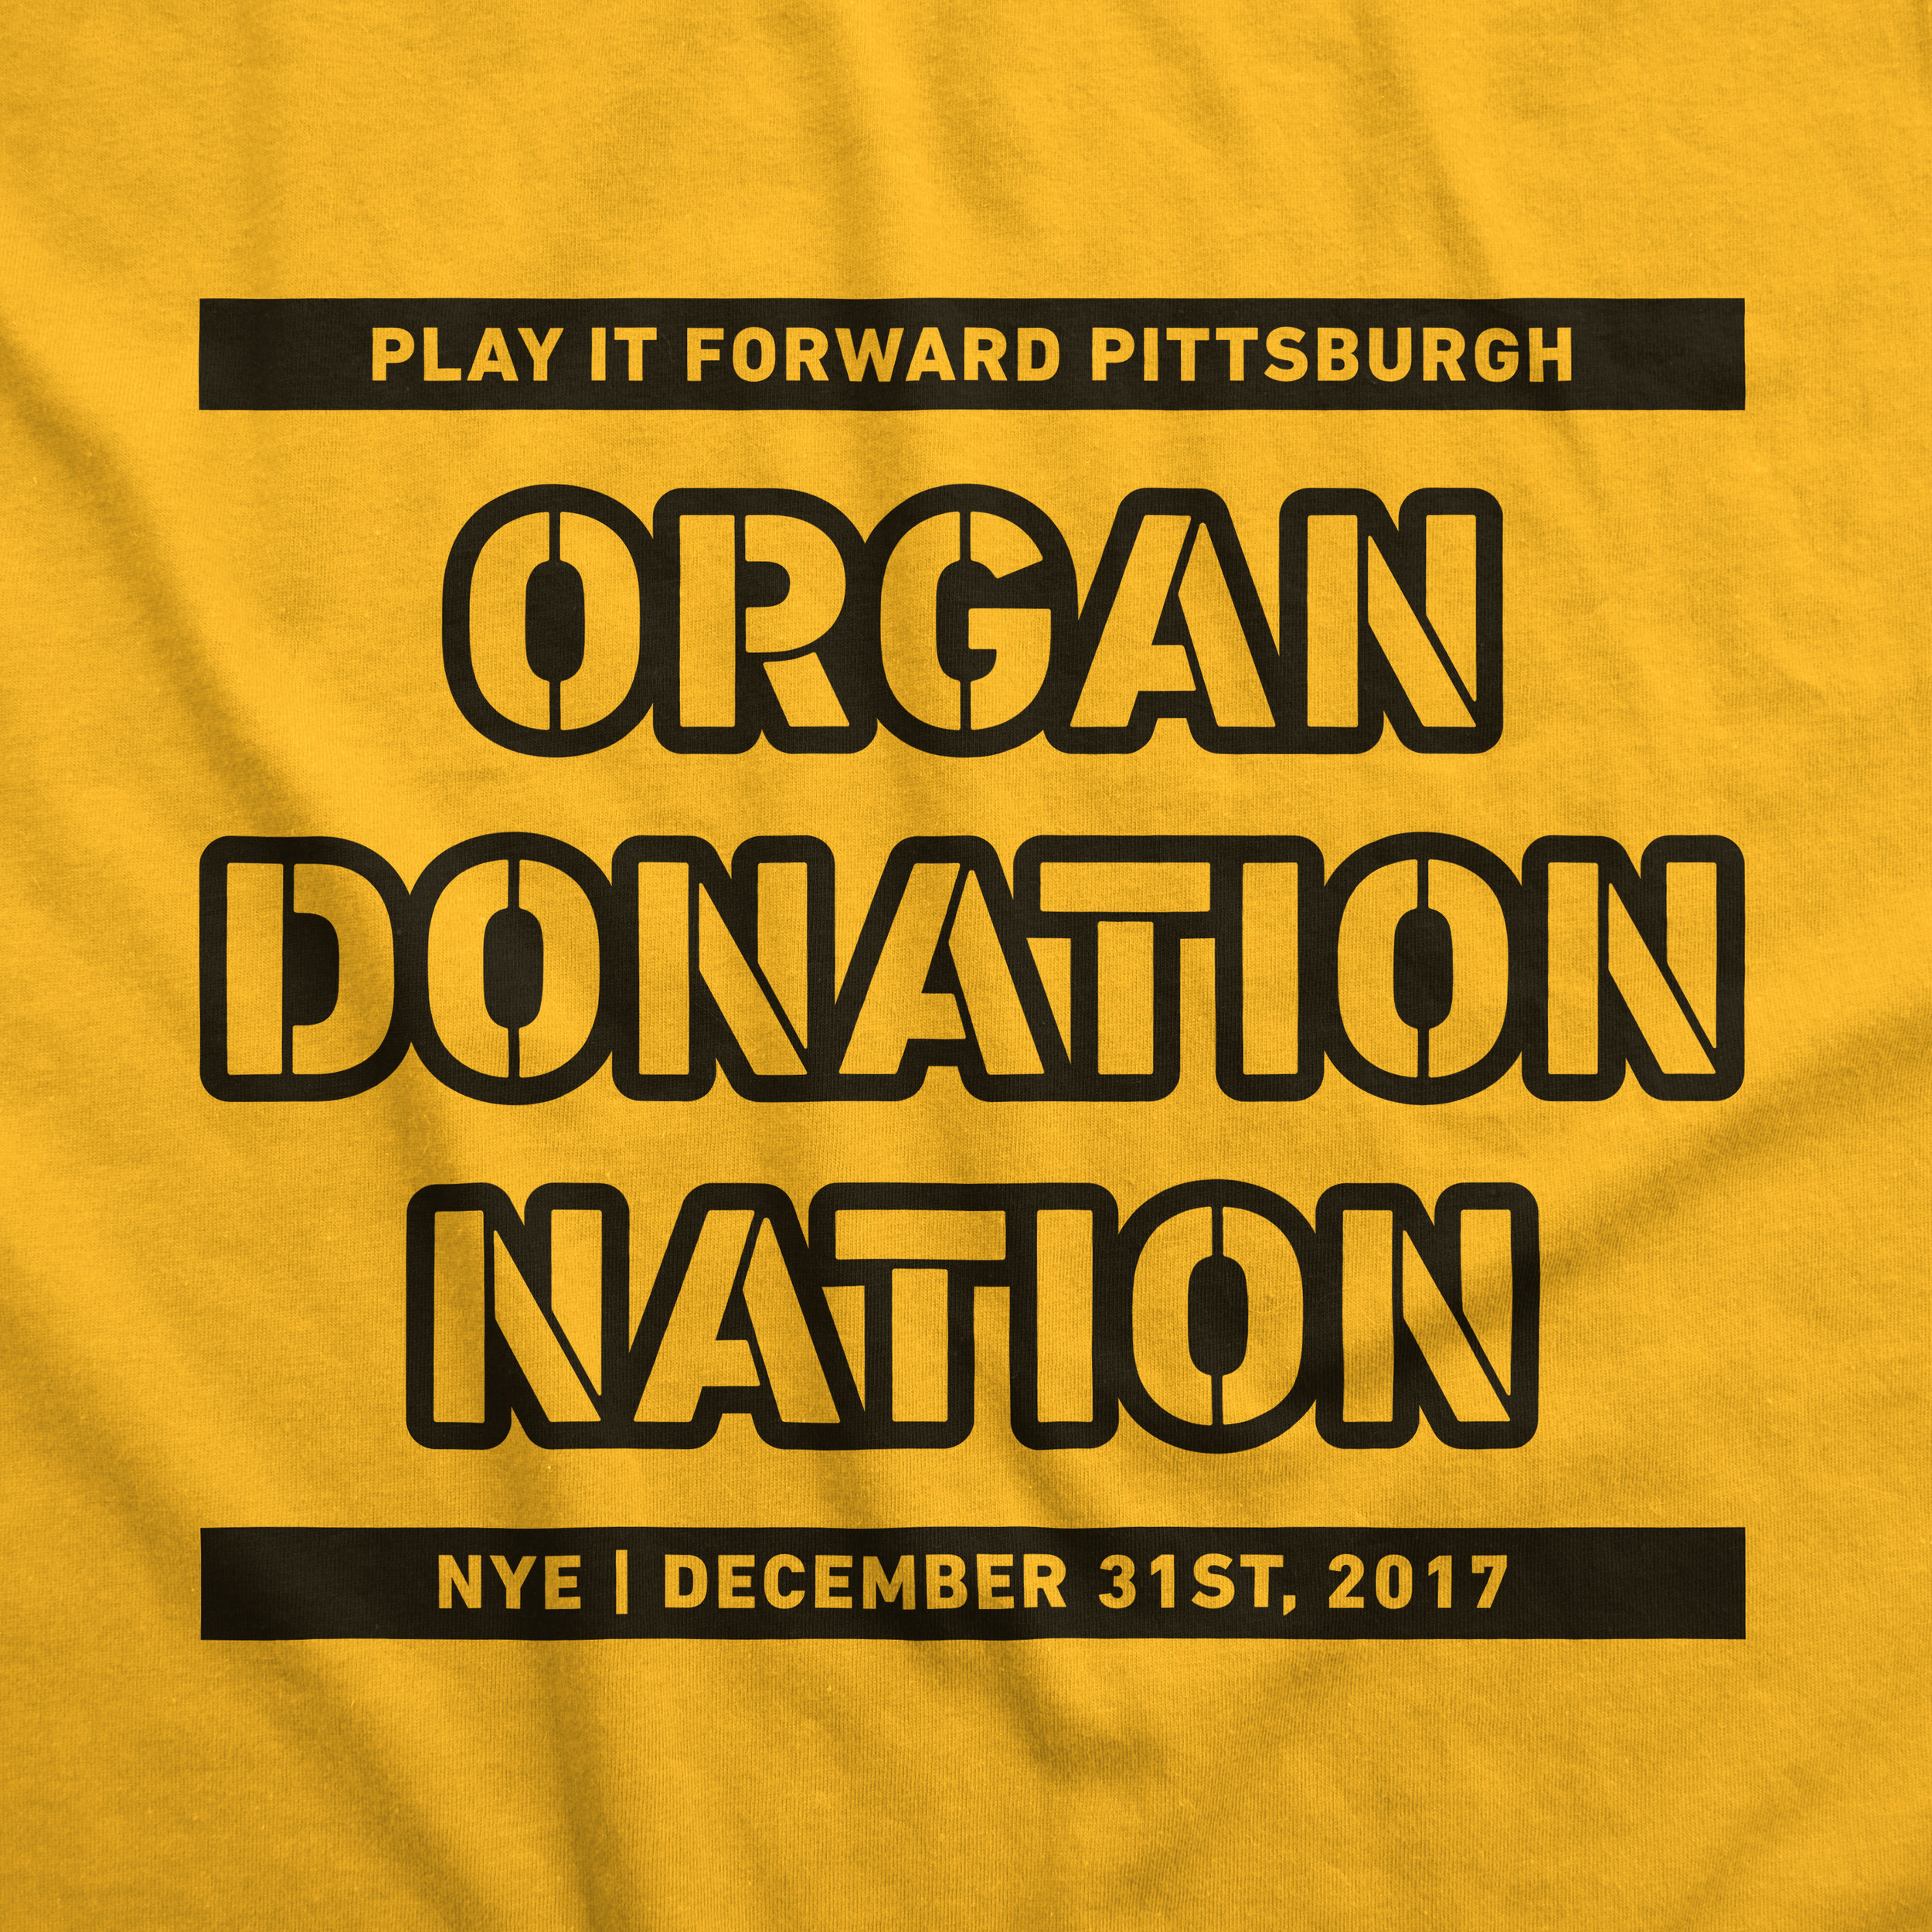 Play It Forward Pittsburgh - Prizeo Charity Campaign Promotional T-ShirtPart of Pittsburgh Steelers Meet & Greet Prize